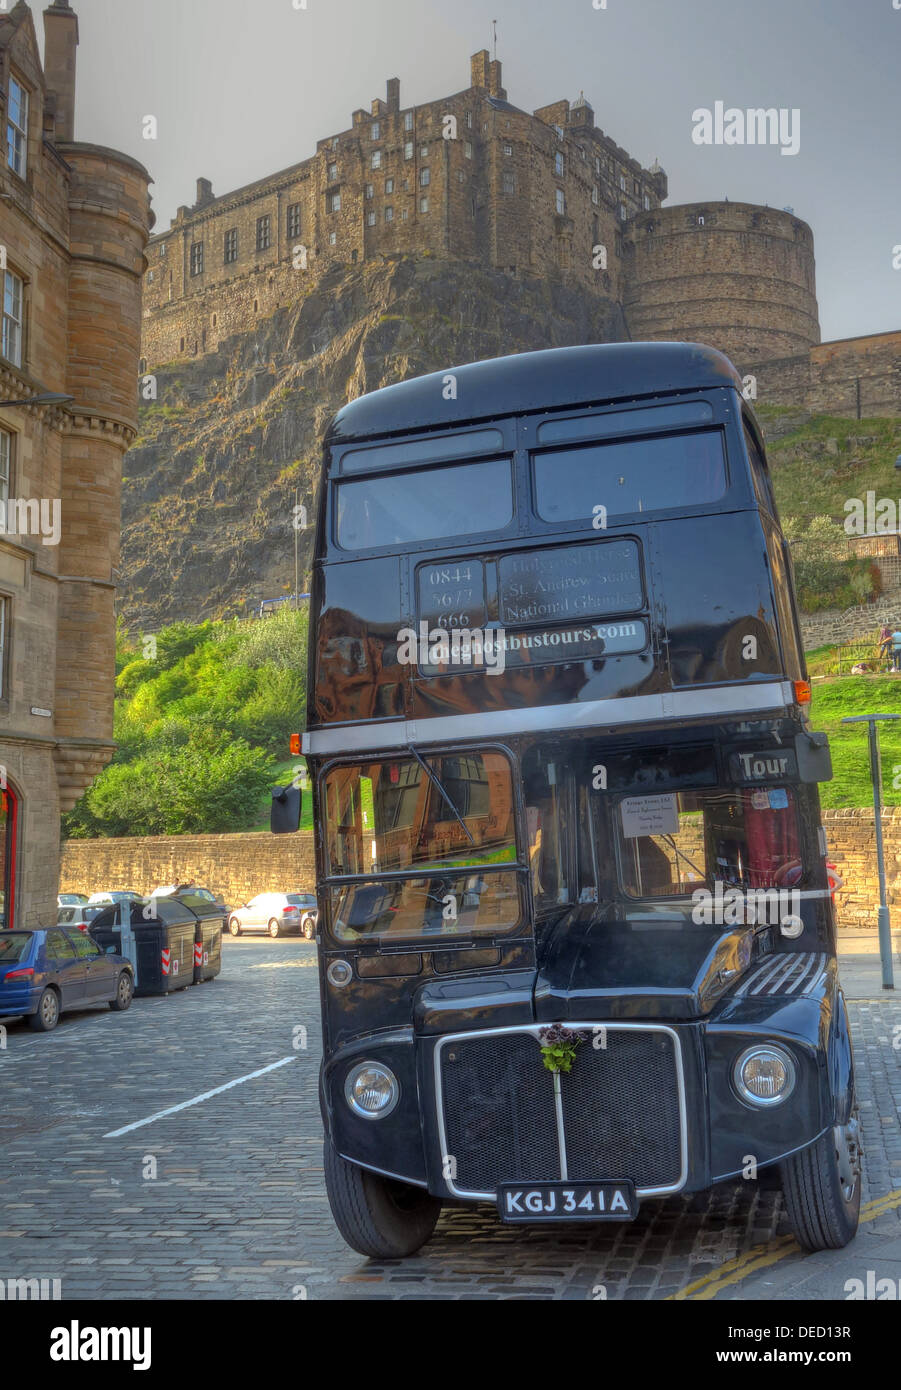 The black London Necrobus, in Edinburgh, Scotland, UK with castle behind. - Stock Image